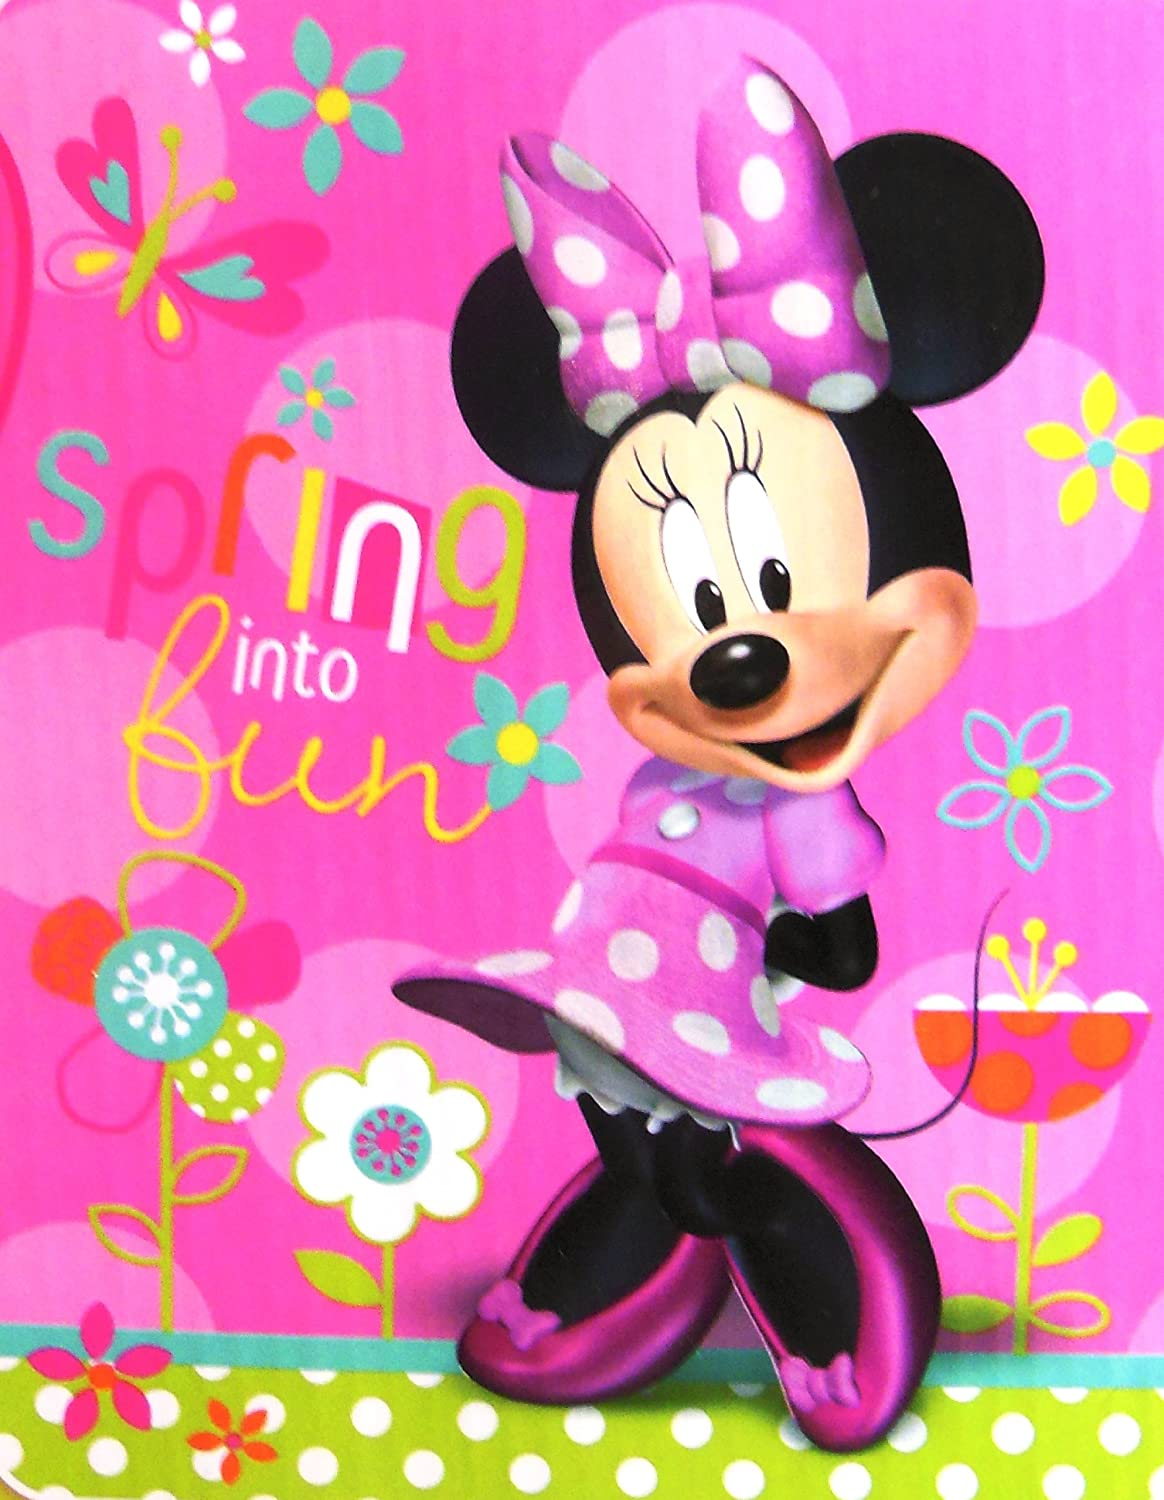 Minnie Mouse Garden Party Micro Sherpa Twin Blanket 60x80